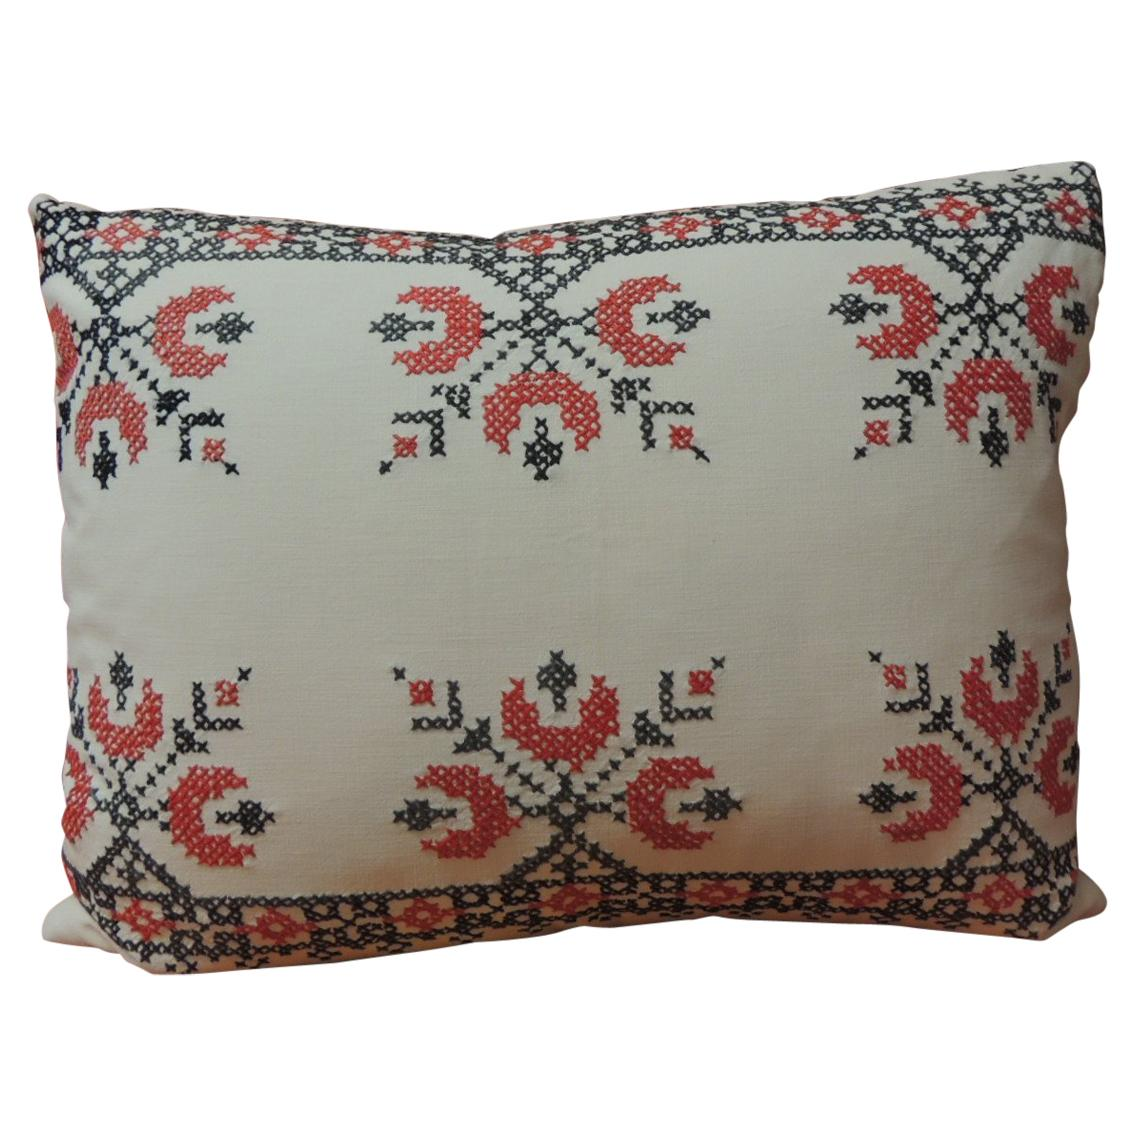 Vintage Cross-Stitch Red and Black German Embroidery Pillow